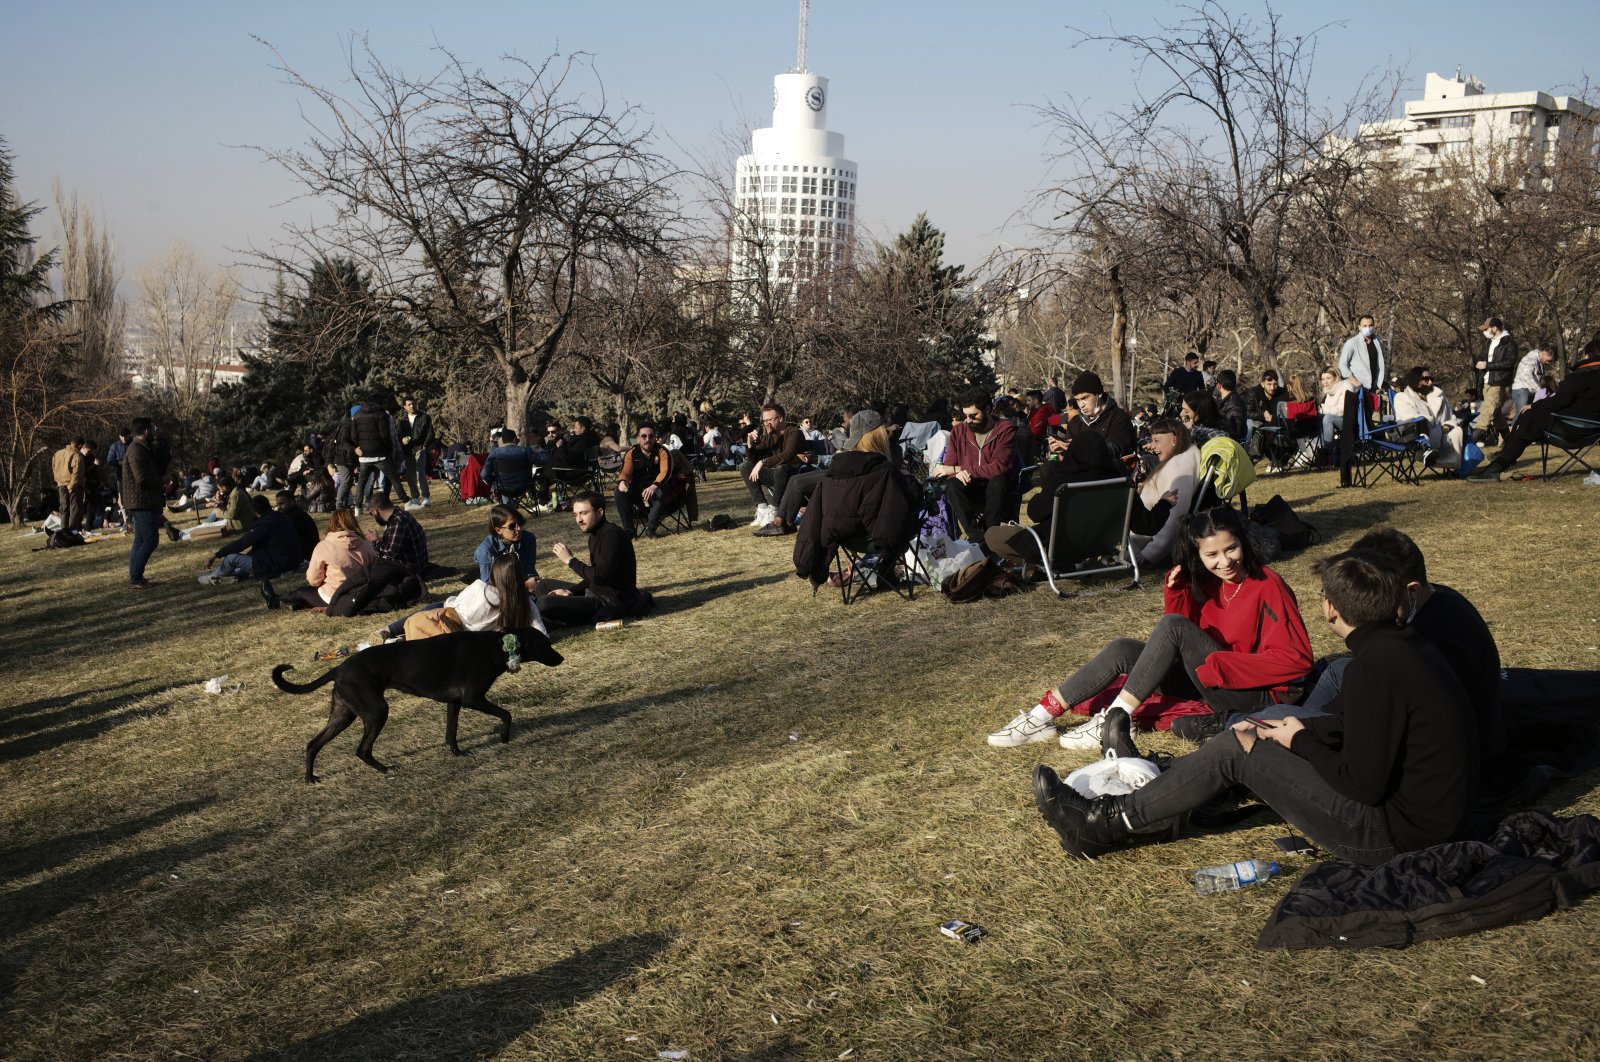 People enjoy the good weather in a park hours before a two-day weekend curfew, in Ankara, Turkey, Friday, Feb. 26, 2021. (AP Photo)